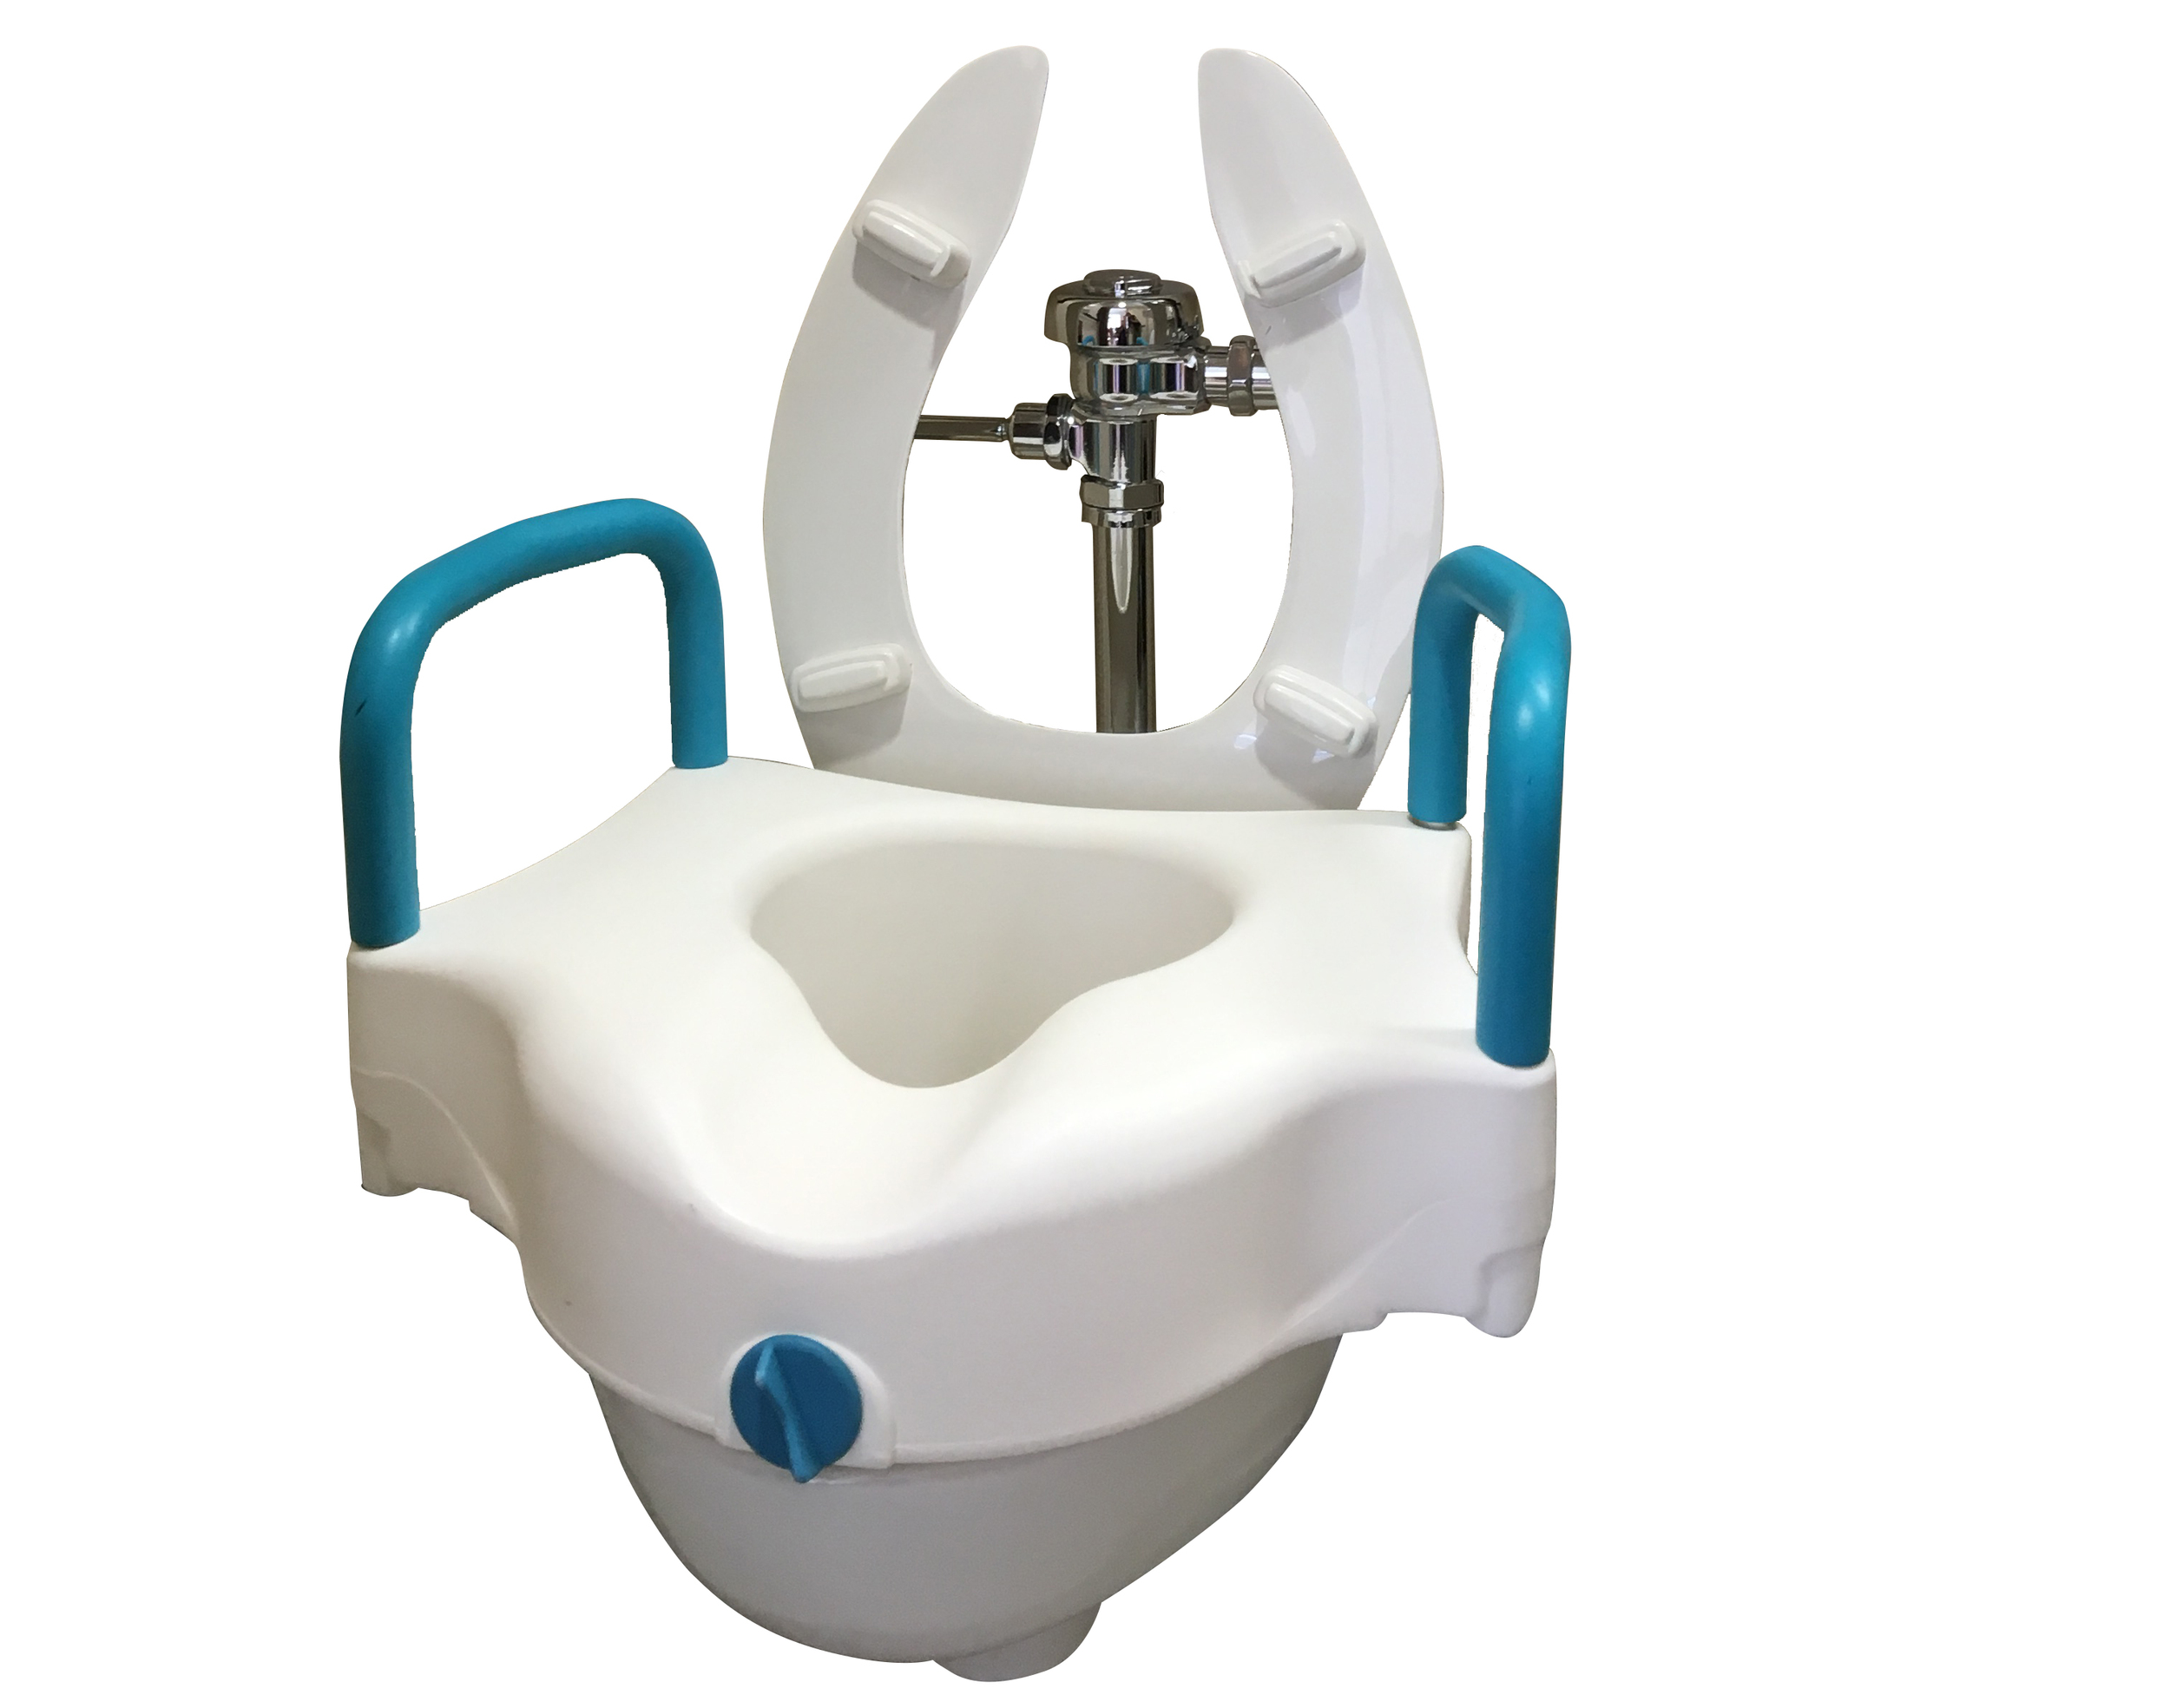 Raised toilet seat with arm rest